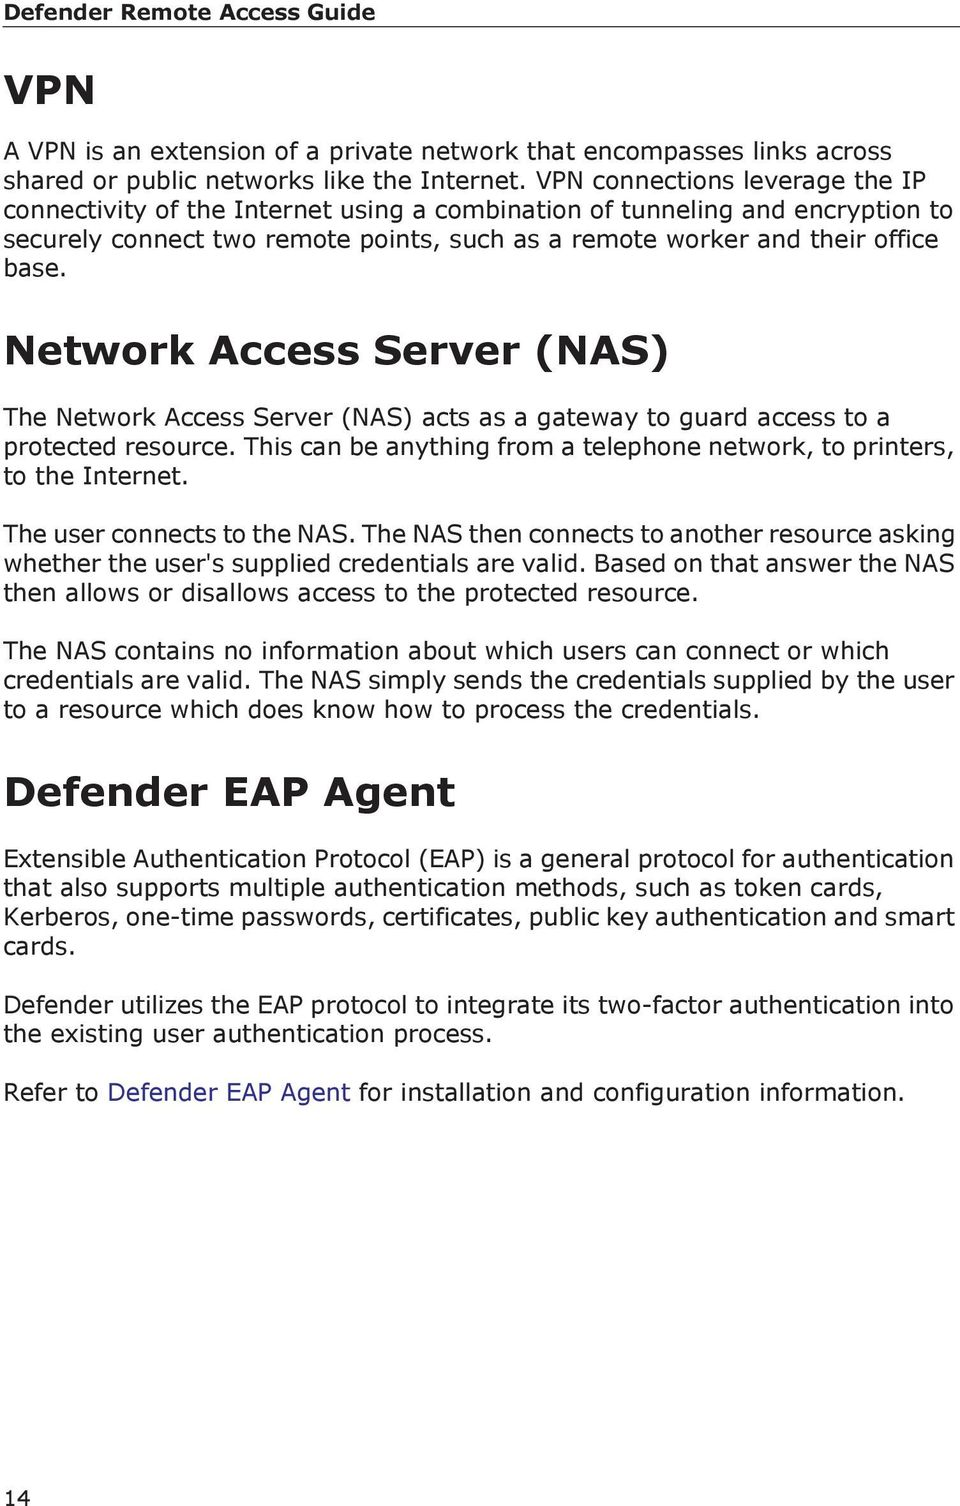 Network Access Server (NAS) The Network Access Server (NAS) acts as a gateway to guard access to a protected resource. This can be anything from a telephone network, to printers, to the Internet.